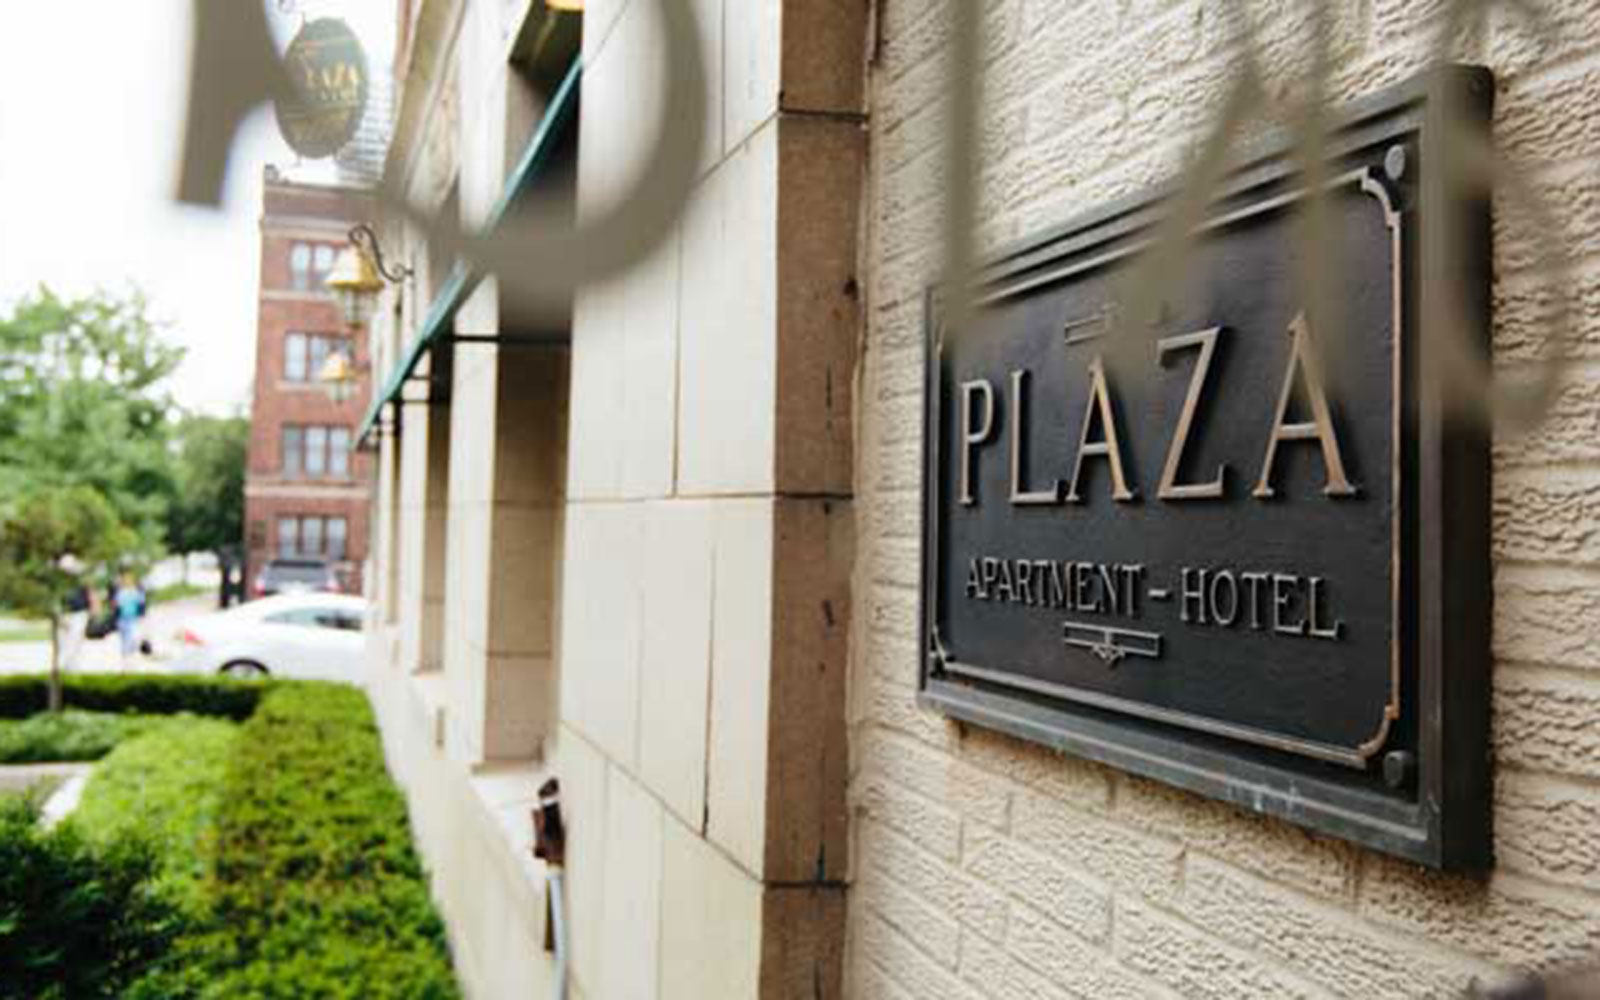 Nine Things to Do, Eat, and See in Milwaukee: The Plaza Hotel